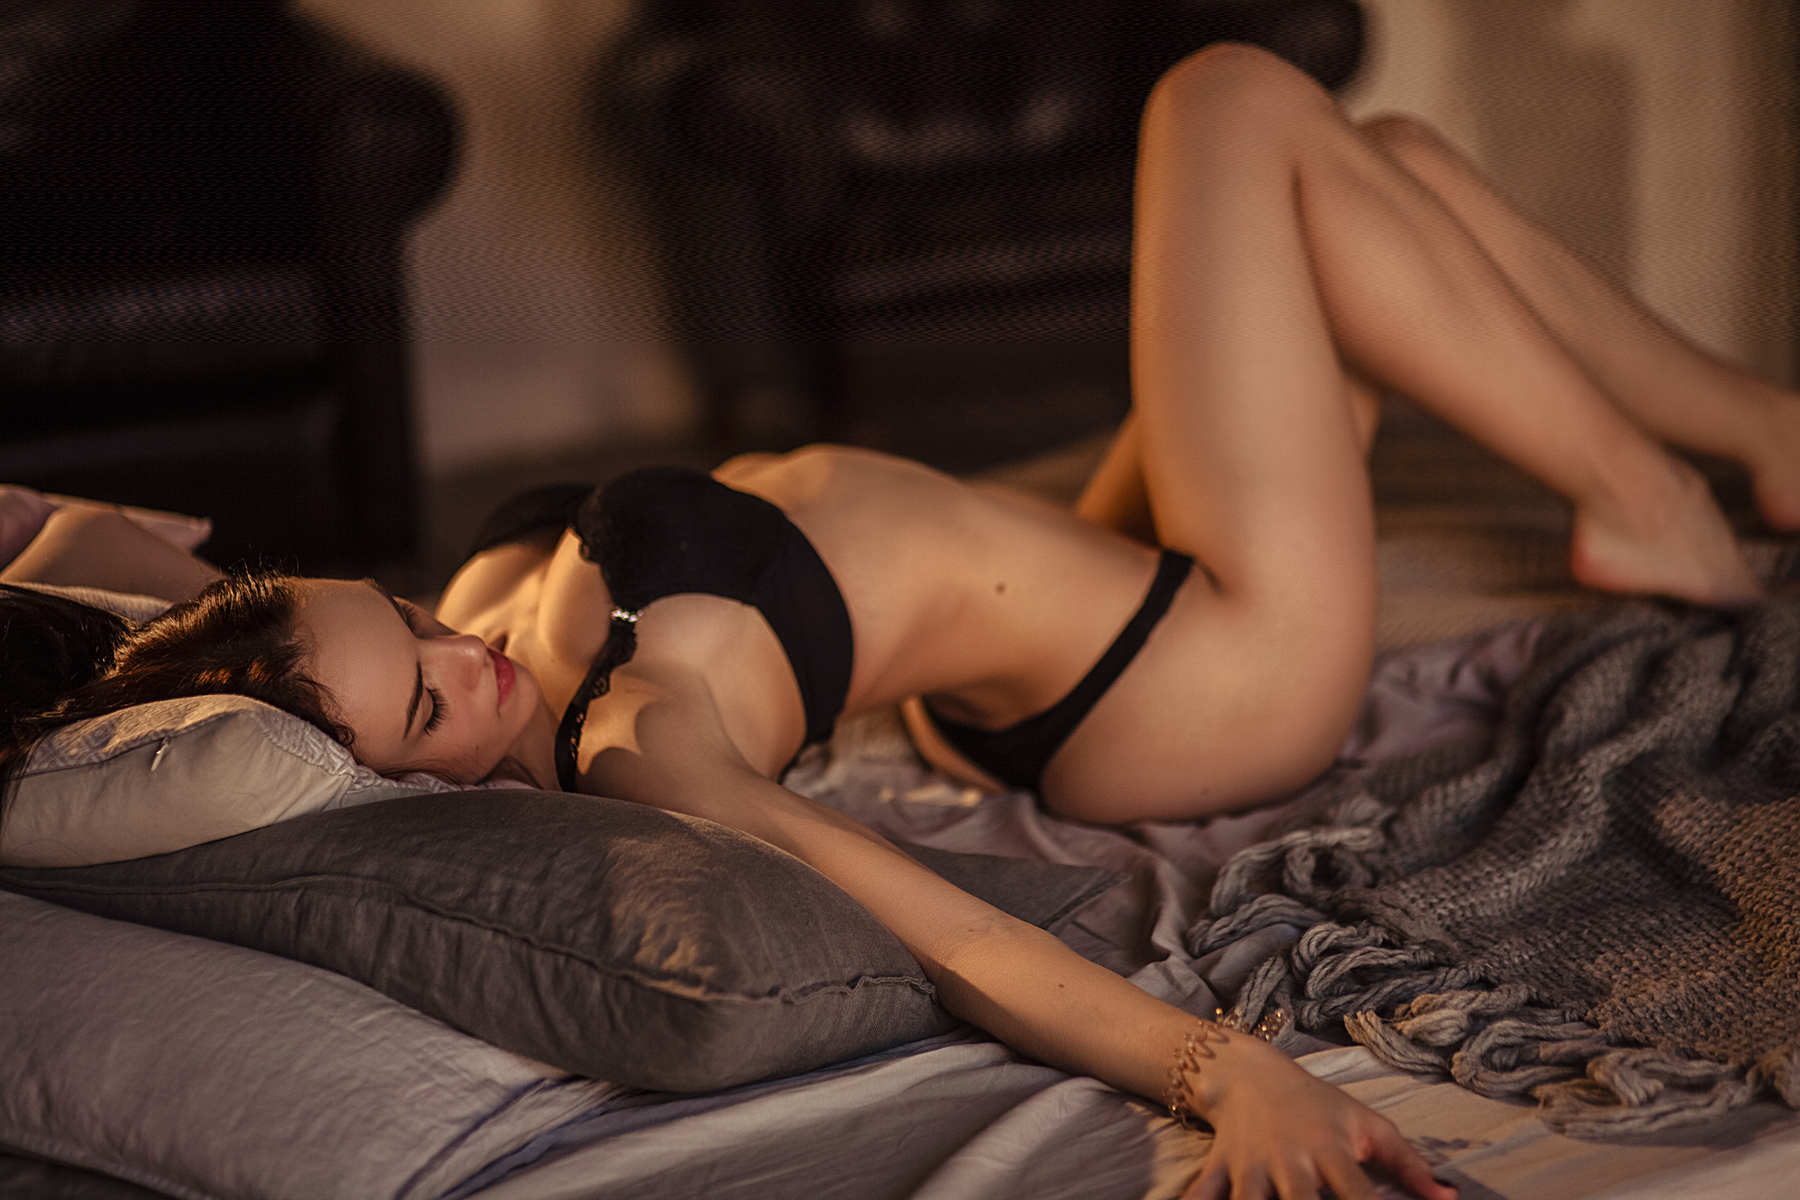 megahookup girl on a bed